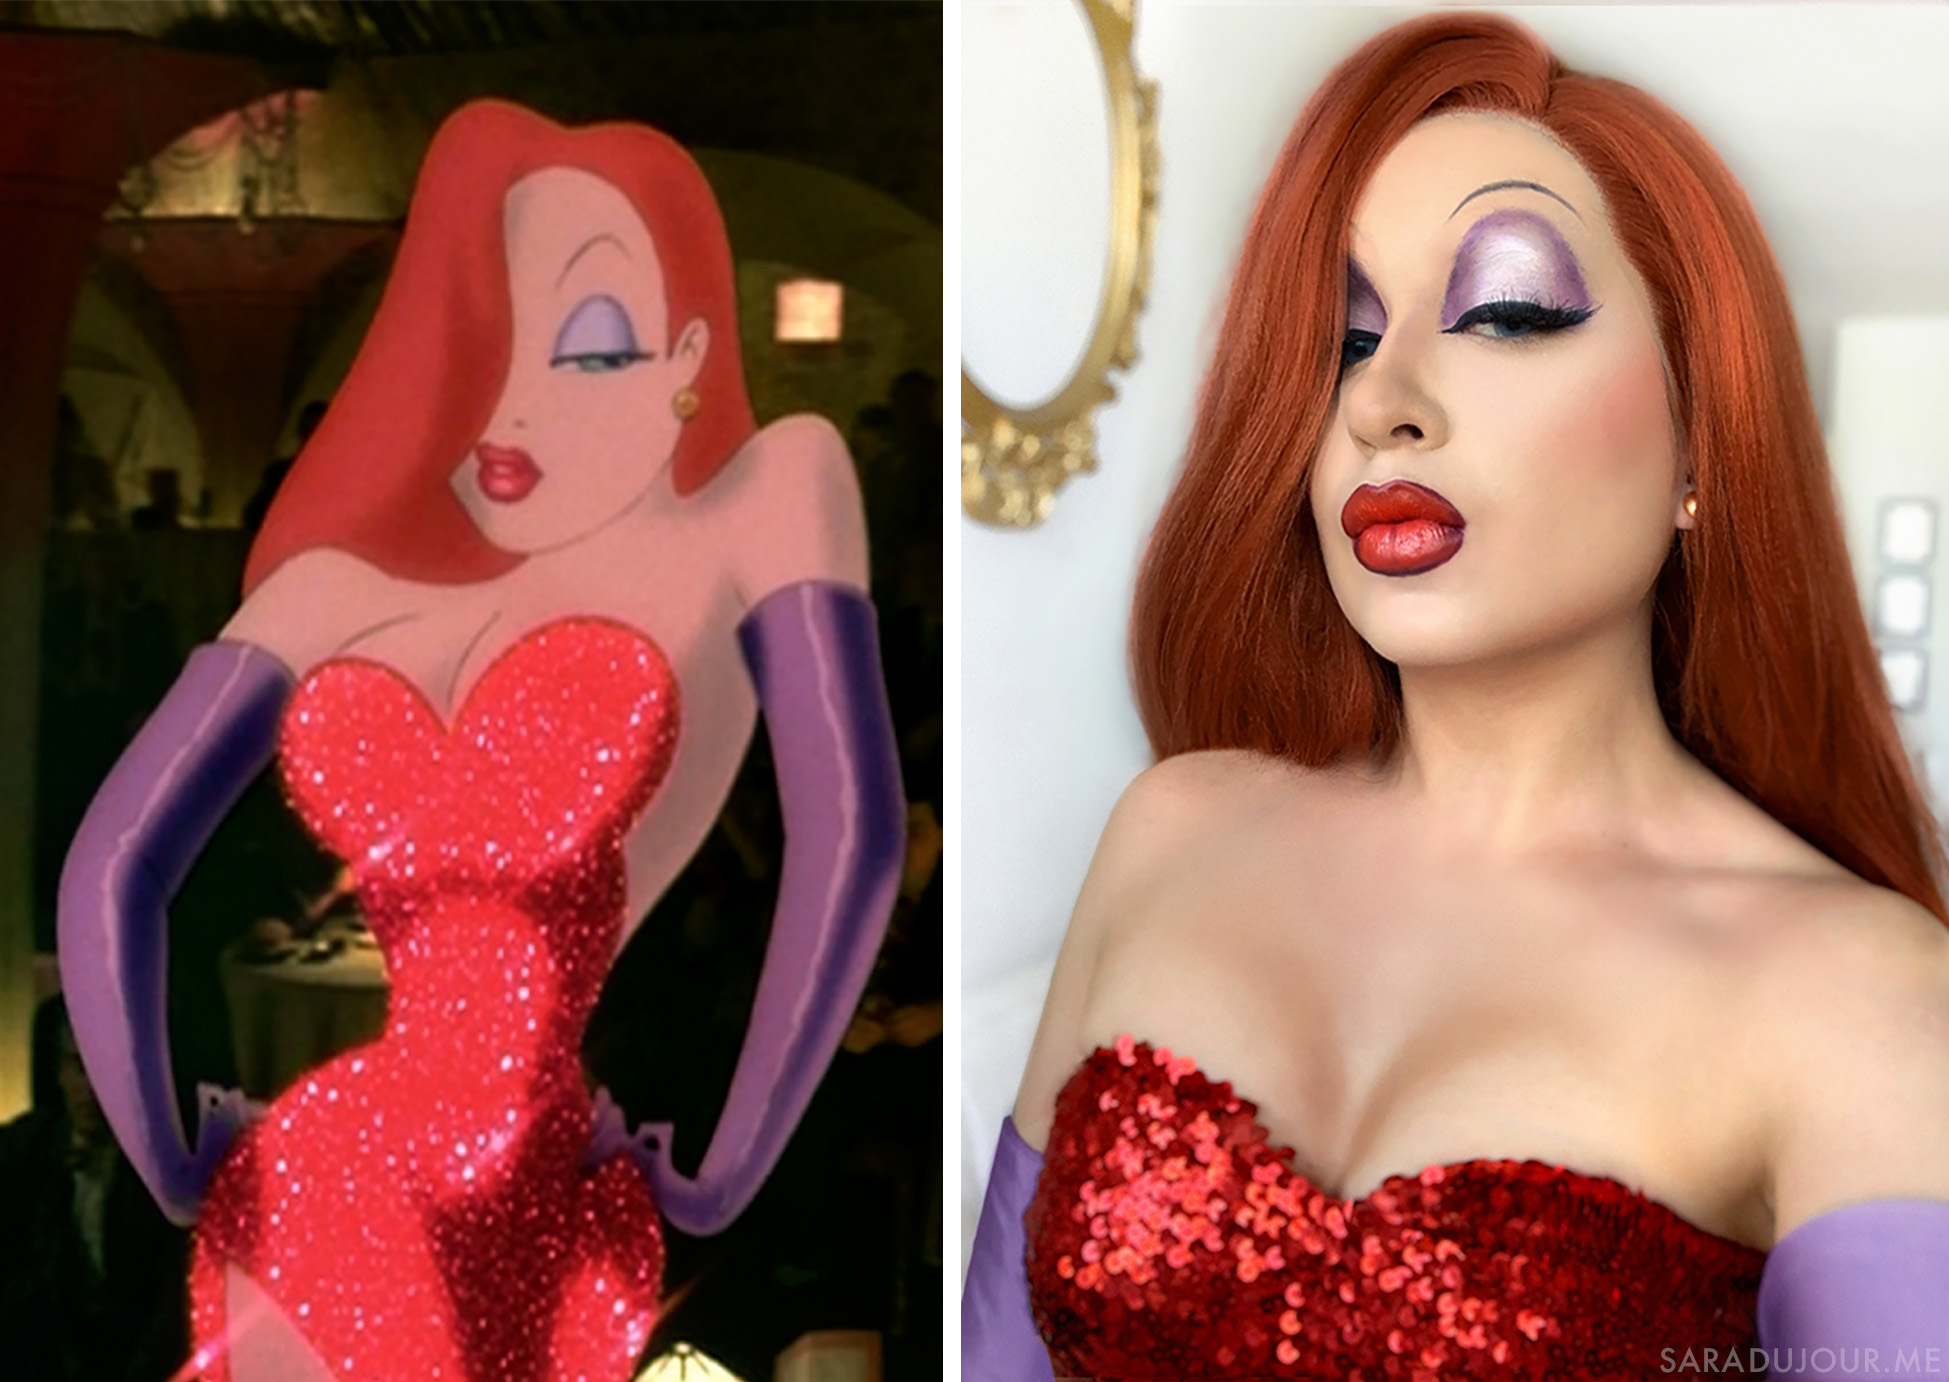 Jessica Rabbit Cosplay and Makeup Transformation | Sara du Jour